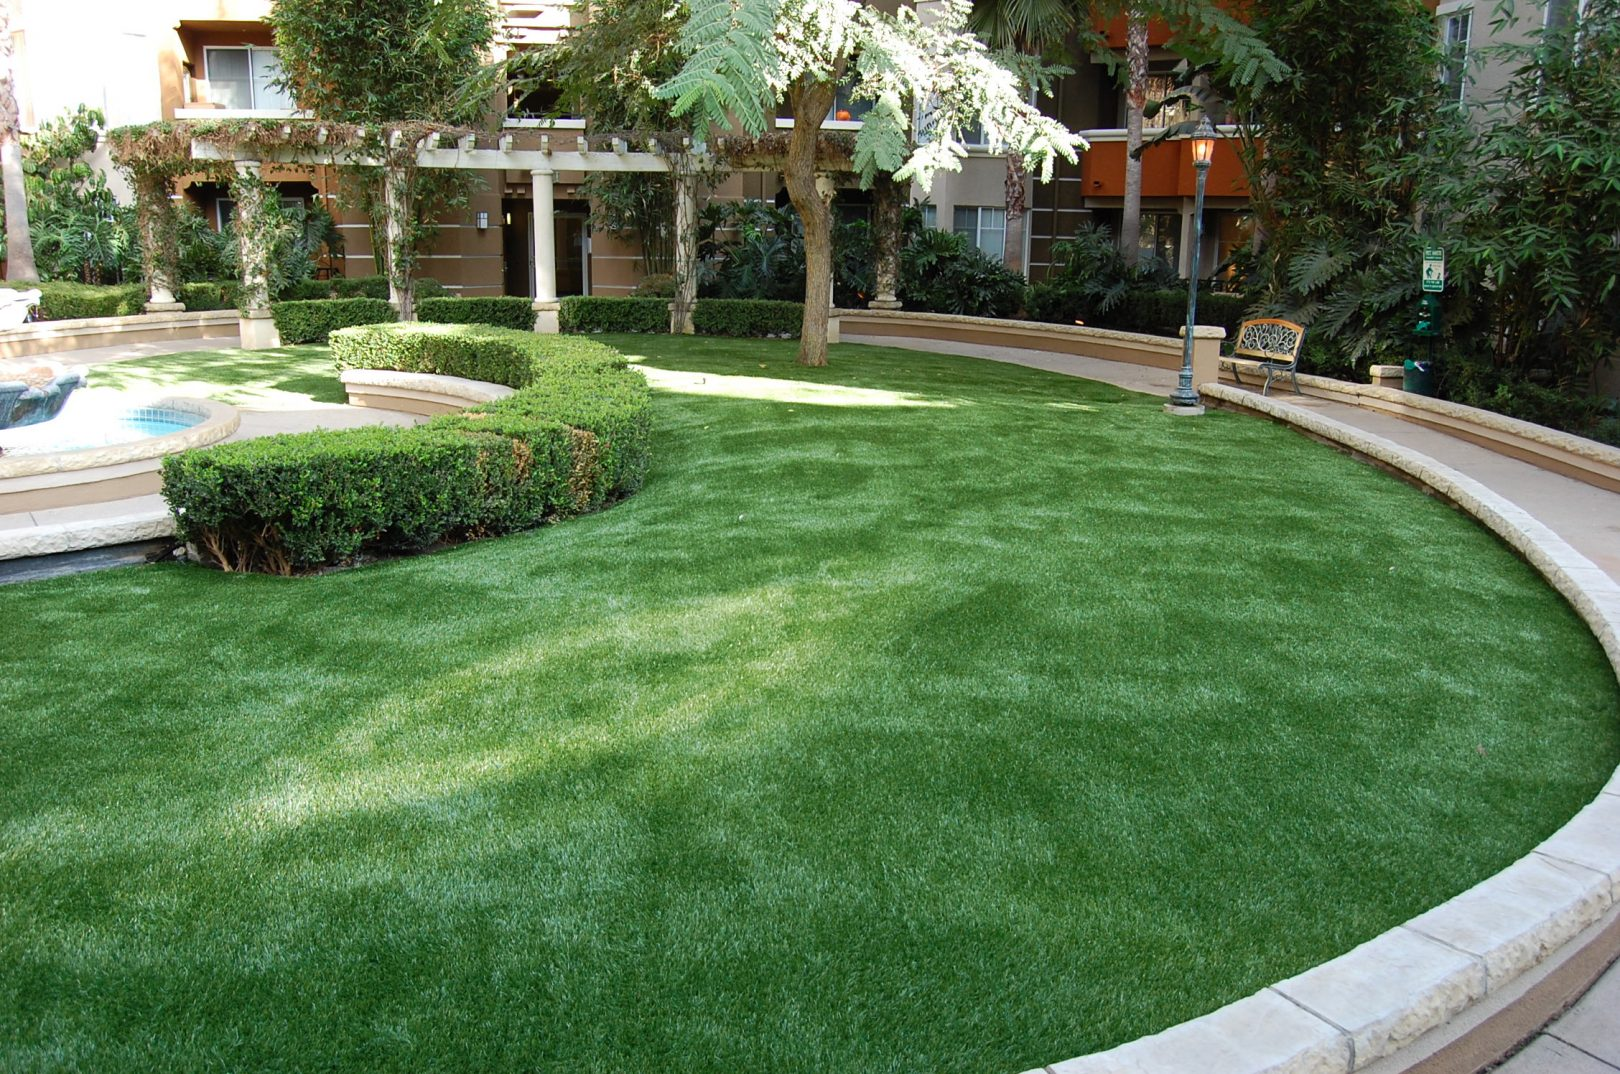 Xeriscaping: Artificial Grass 101 - FiveSTAR Landscape ... on Artificial Turf Backyard Ideas id=12542